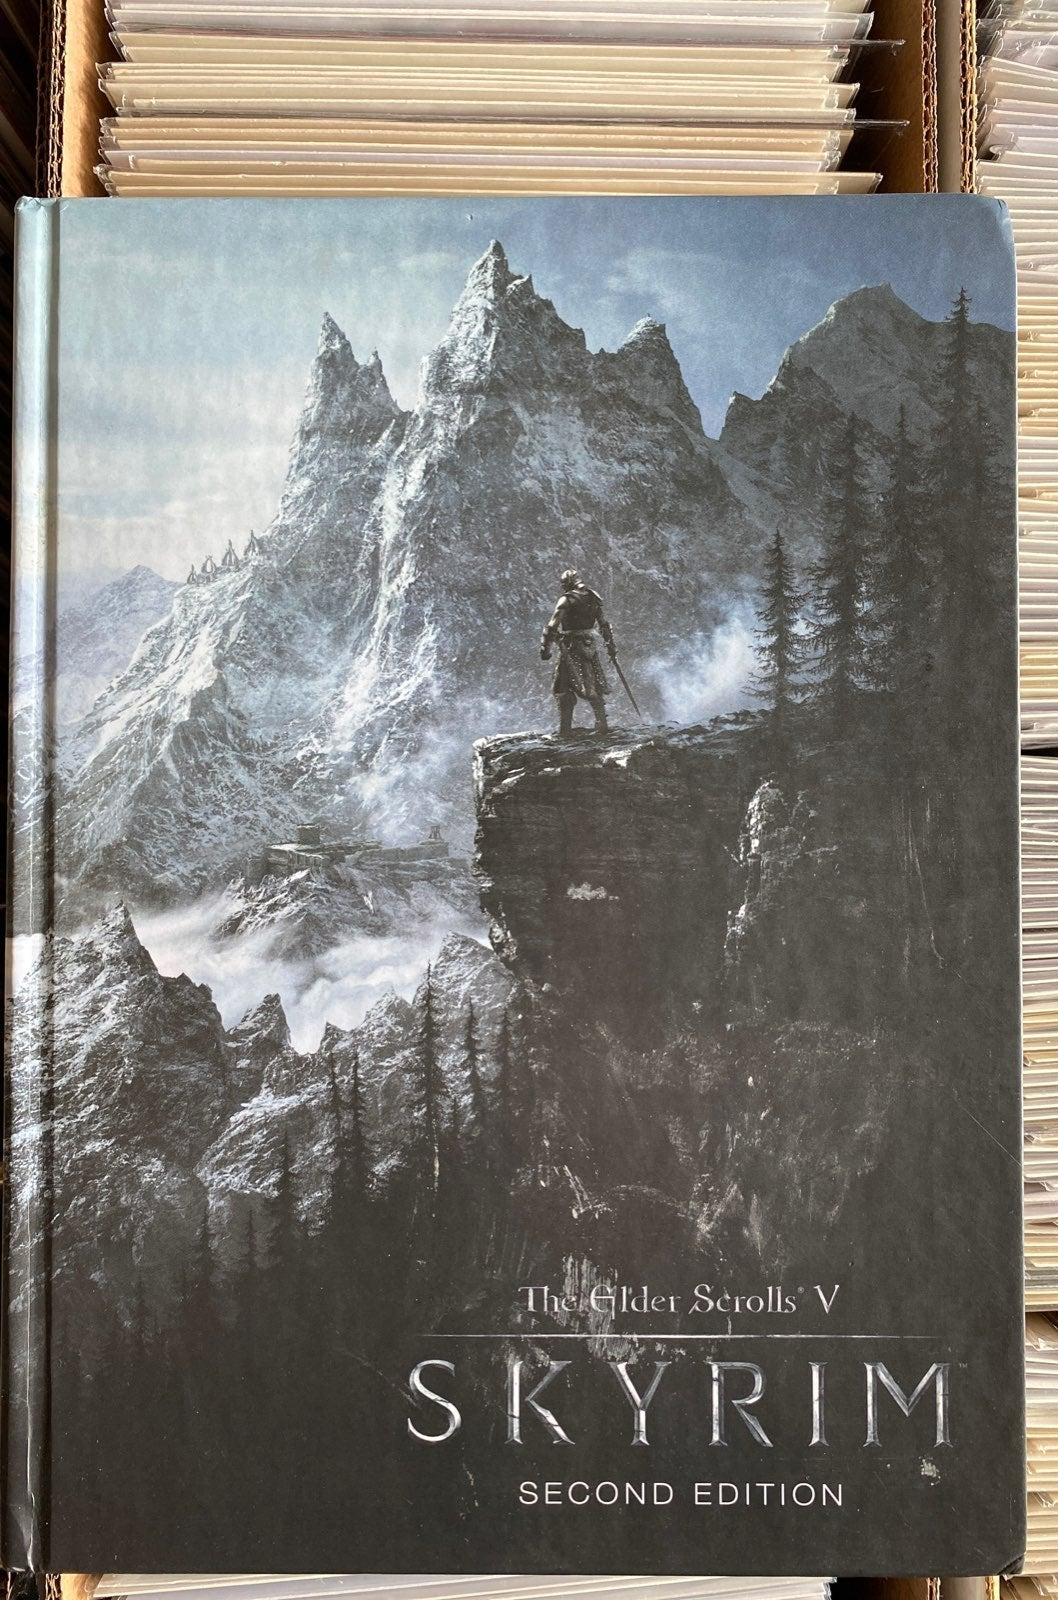 The Elder Scrolls V: Skyrim Game Guide